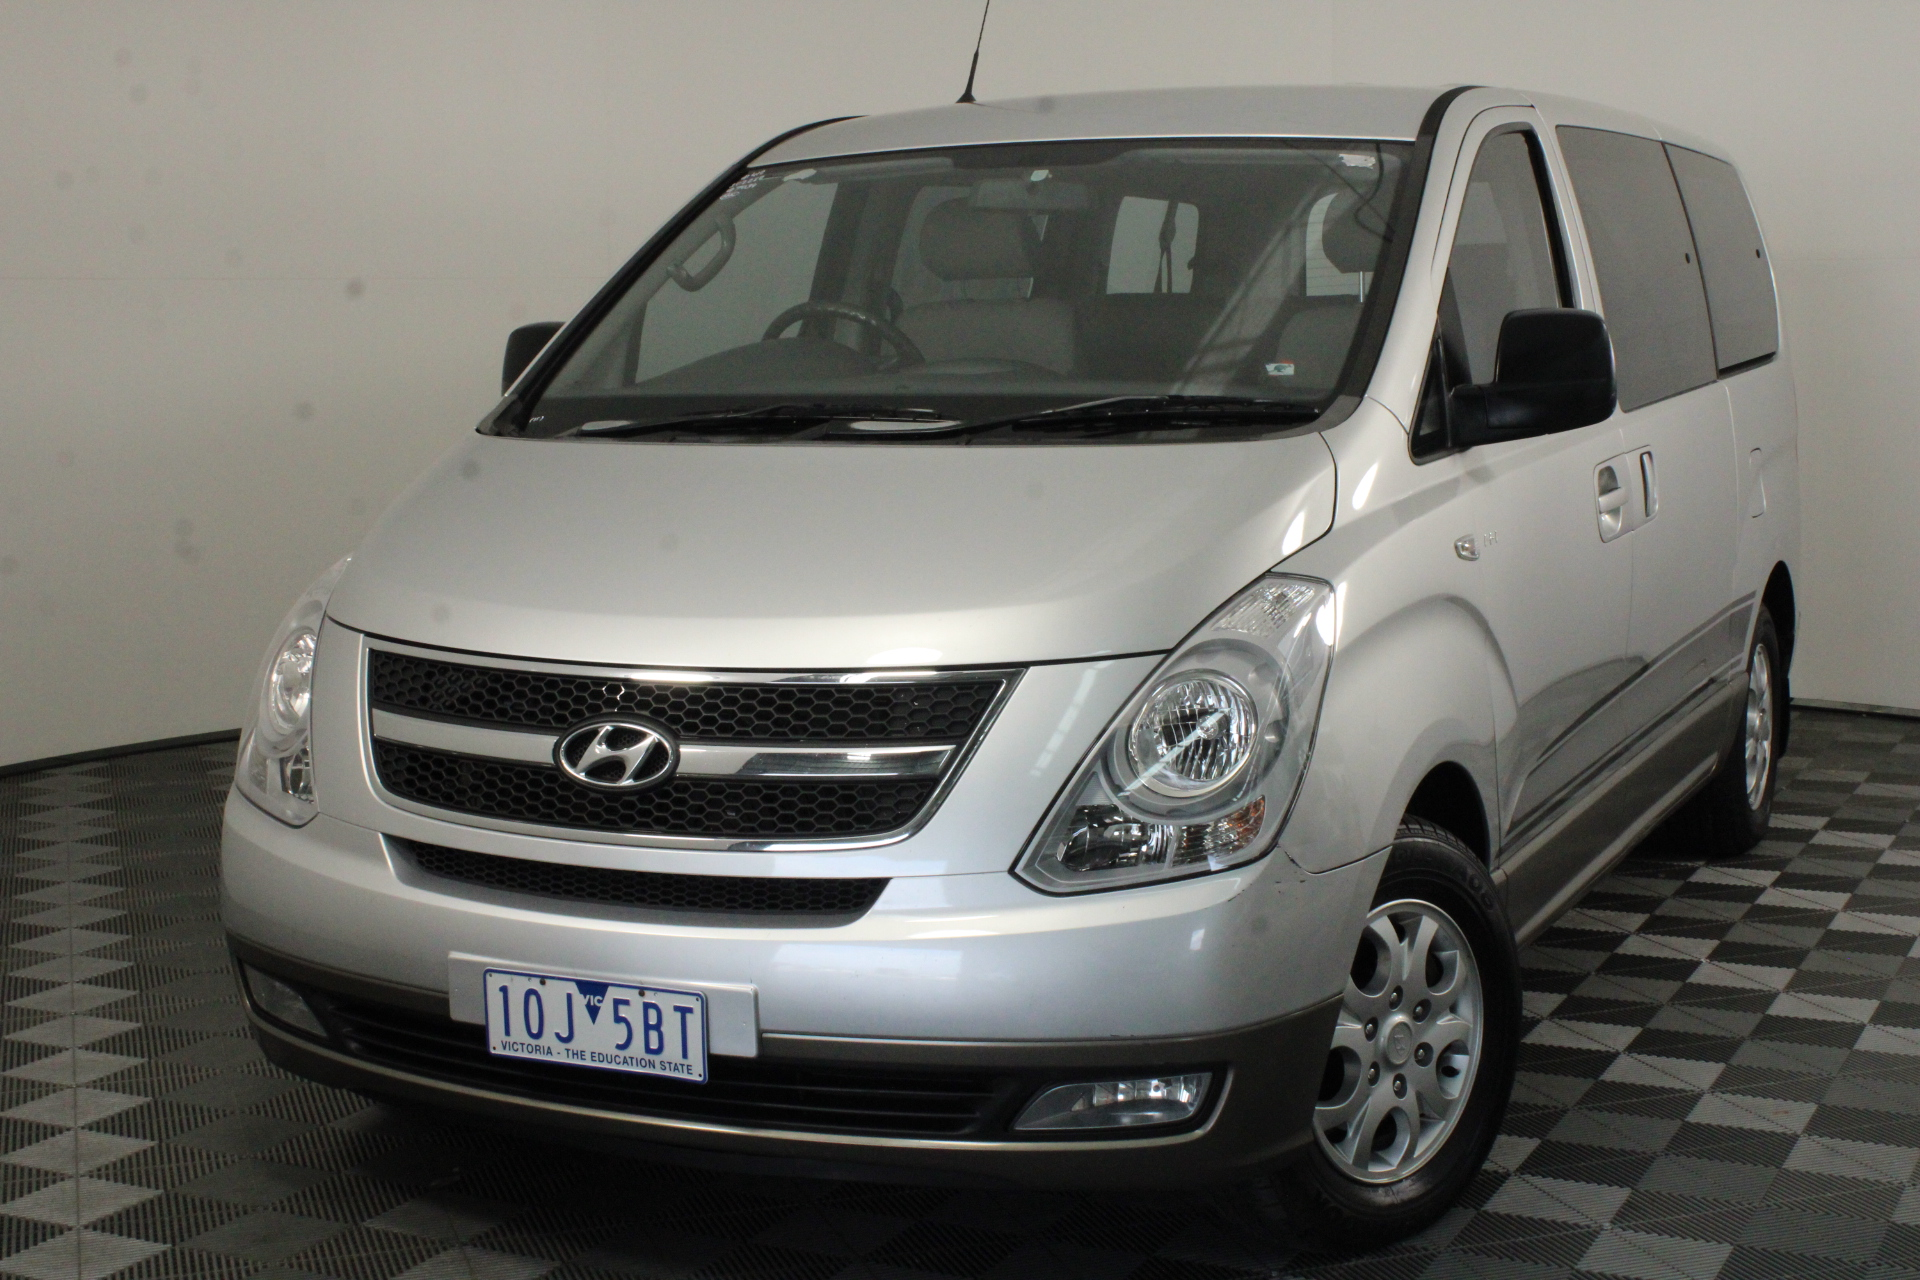 2009 Hyundai iMAX TQ Turbo Diesel Automatic 8 Seats People Mover